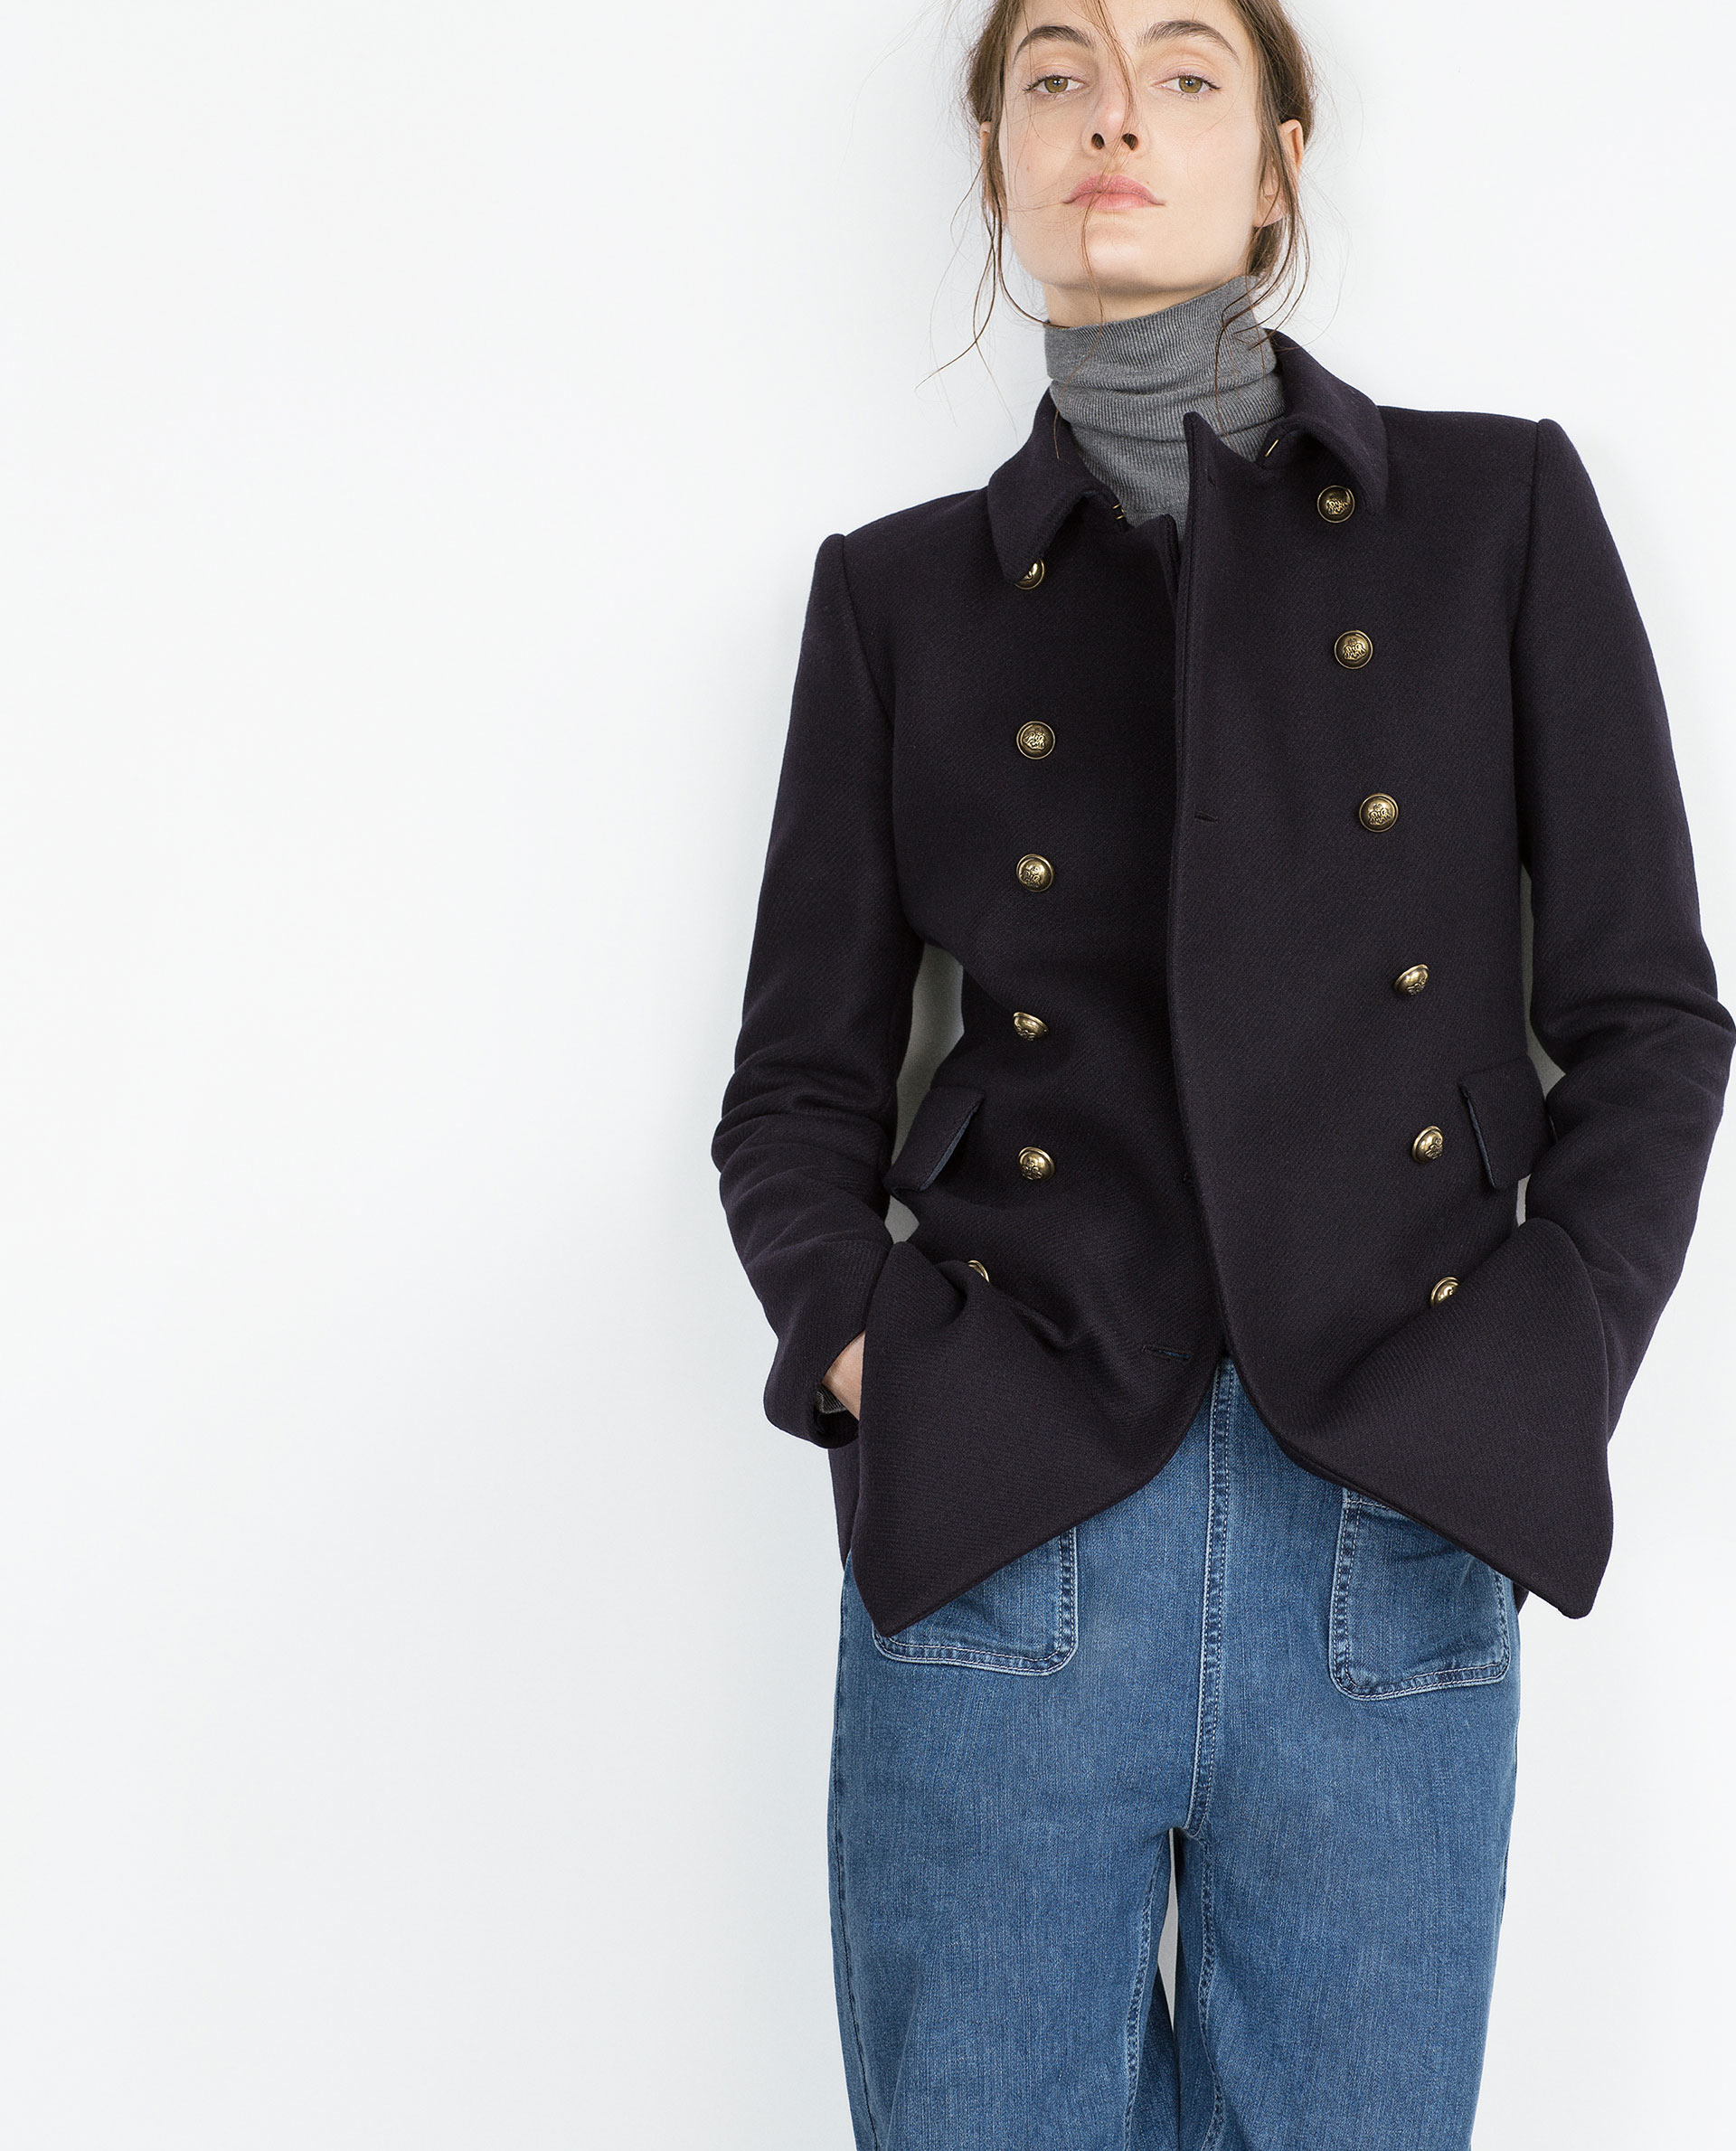 Short navy coat – Novelties of modern fashion photo blog